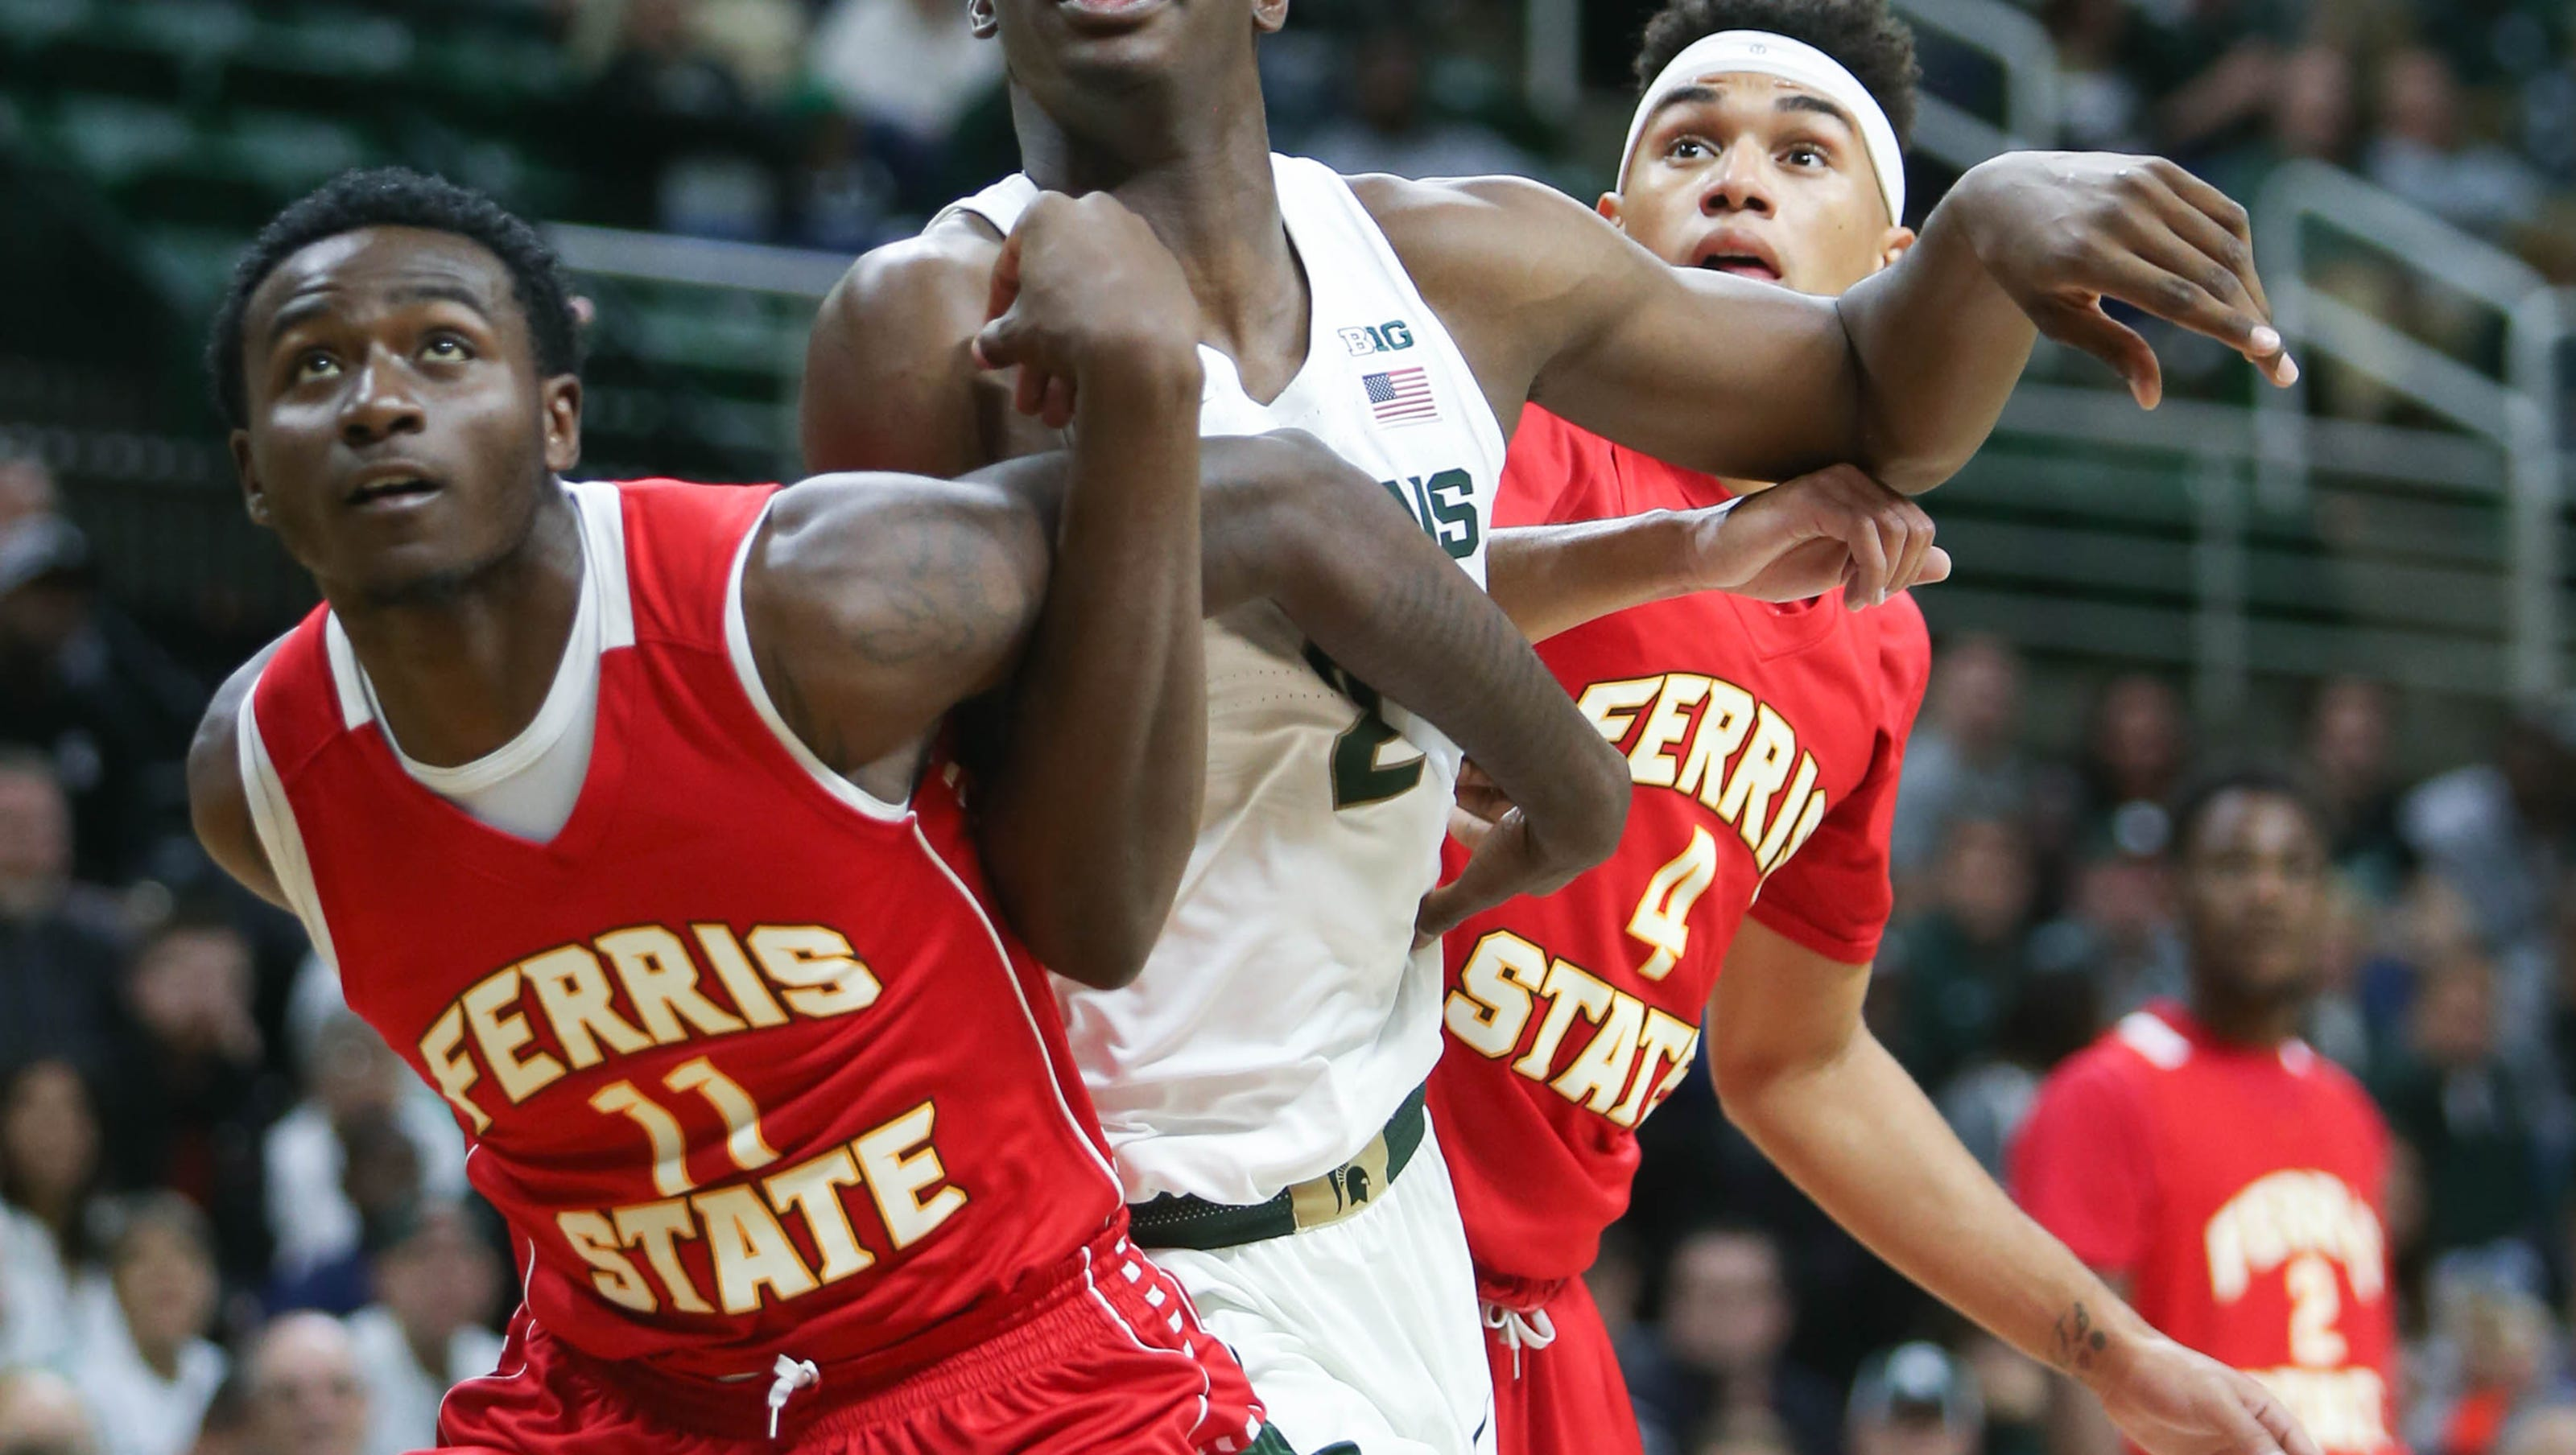 Ferris State Basketball Playing For Division Ii National Championship